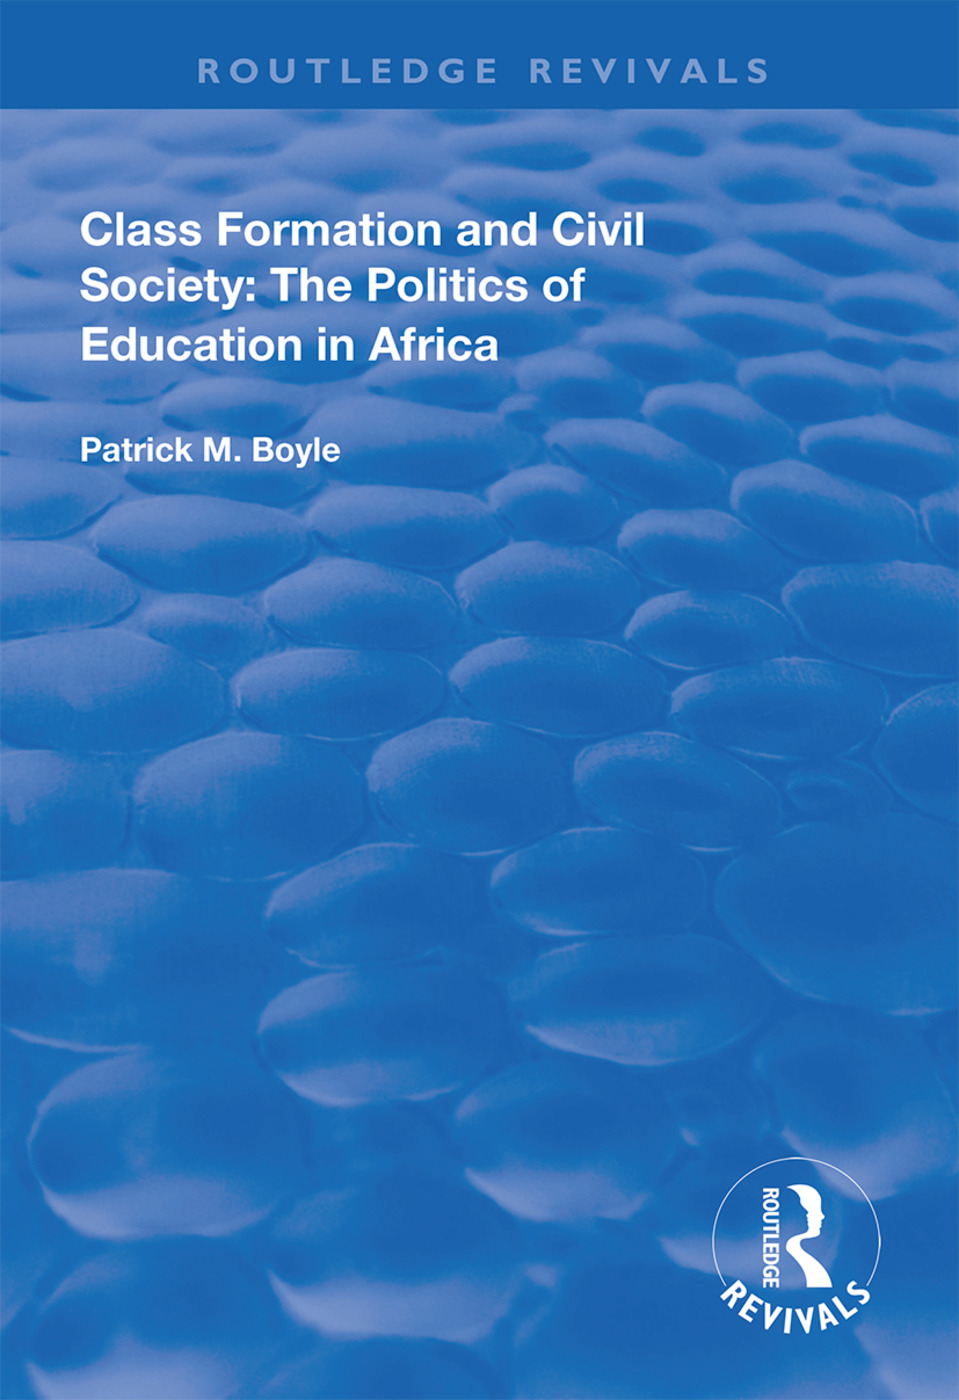 Class Formation and Civil Society: The Politics of Education in Africa book cover